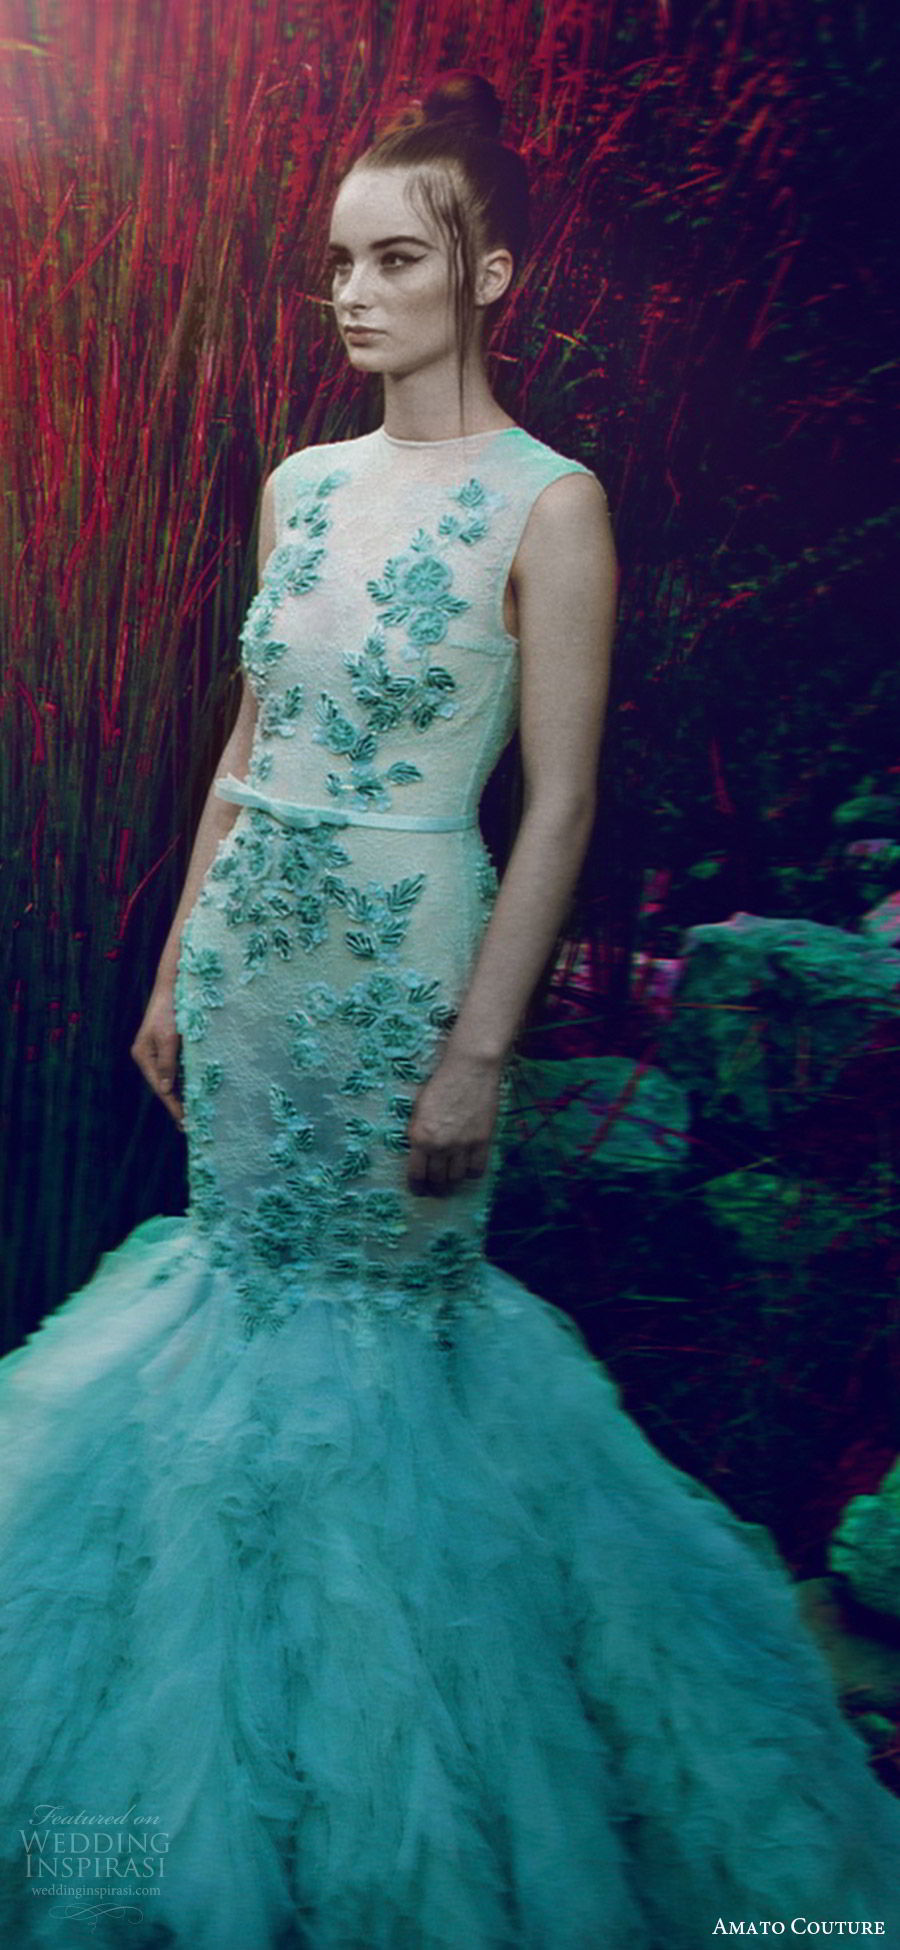 amato couture 2017 secret garden collection sleeveless high neck illusion embellished mint green mermaid dress (7) zv